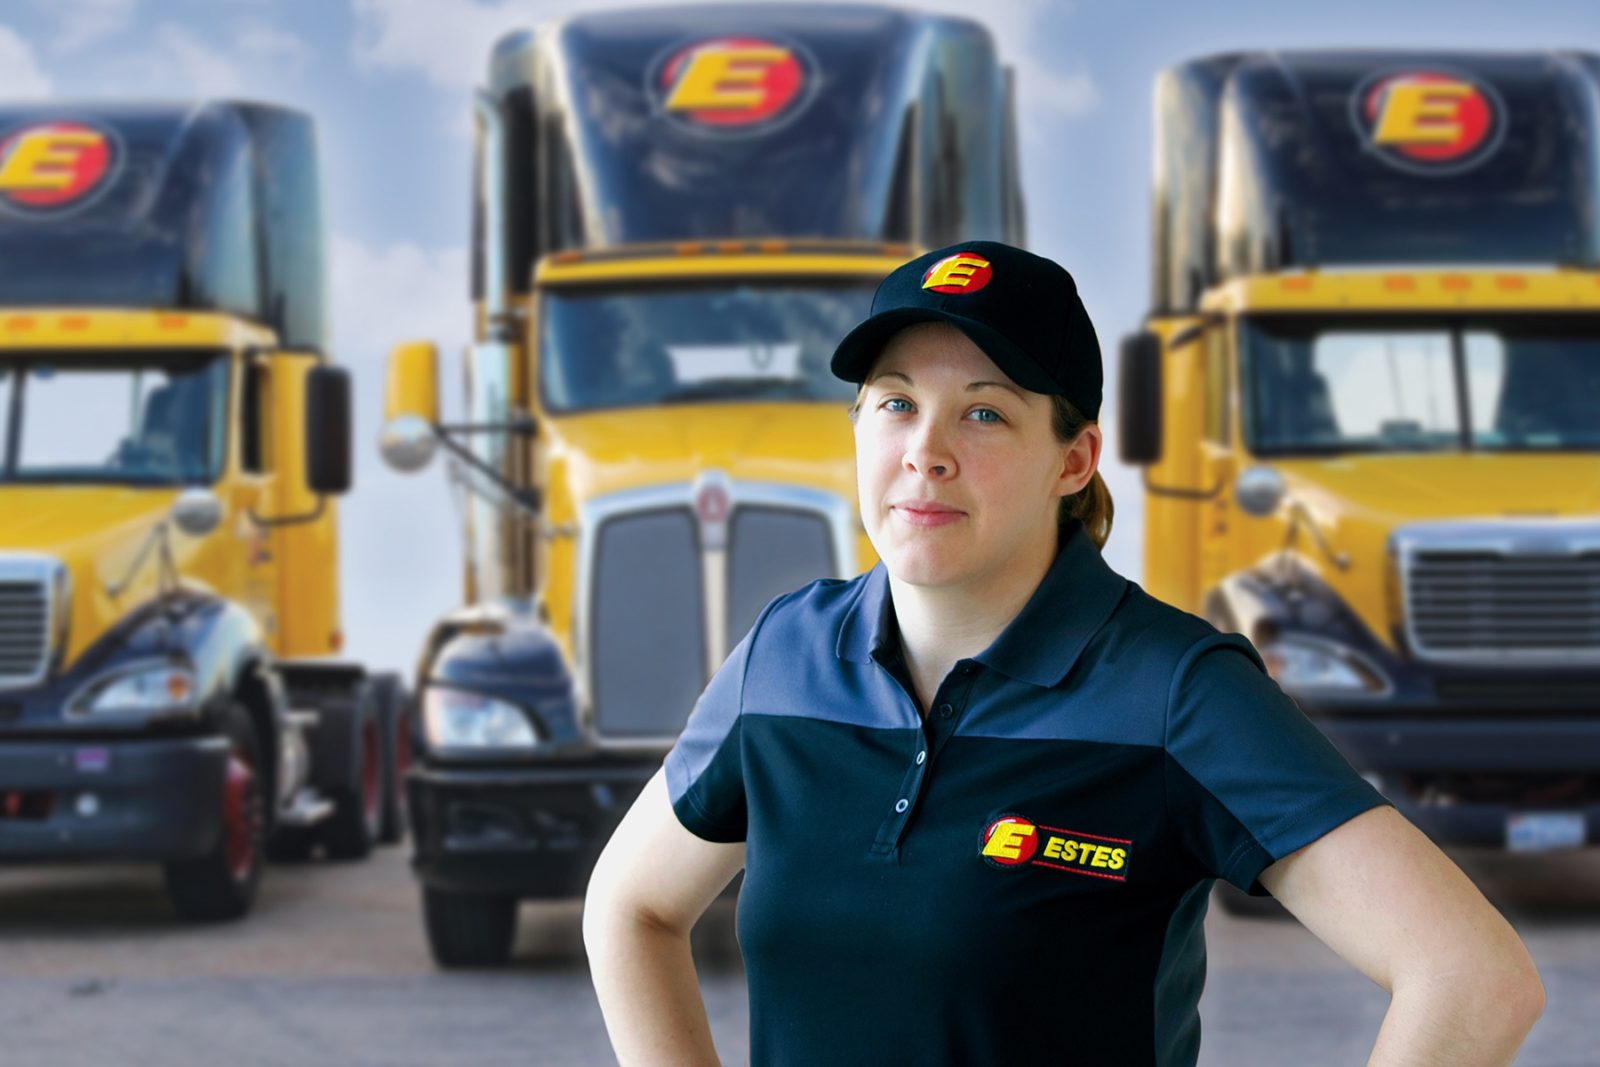 Services Jobs, Career & Employment Opportunities Industrial Transport Services Greenville SC